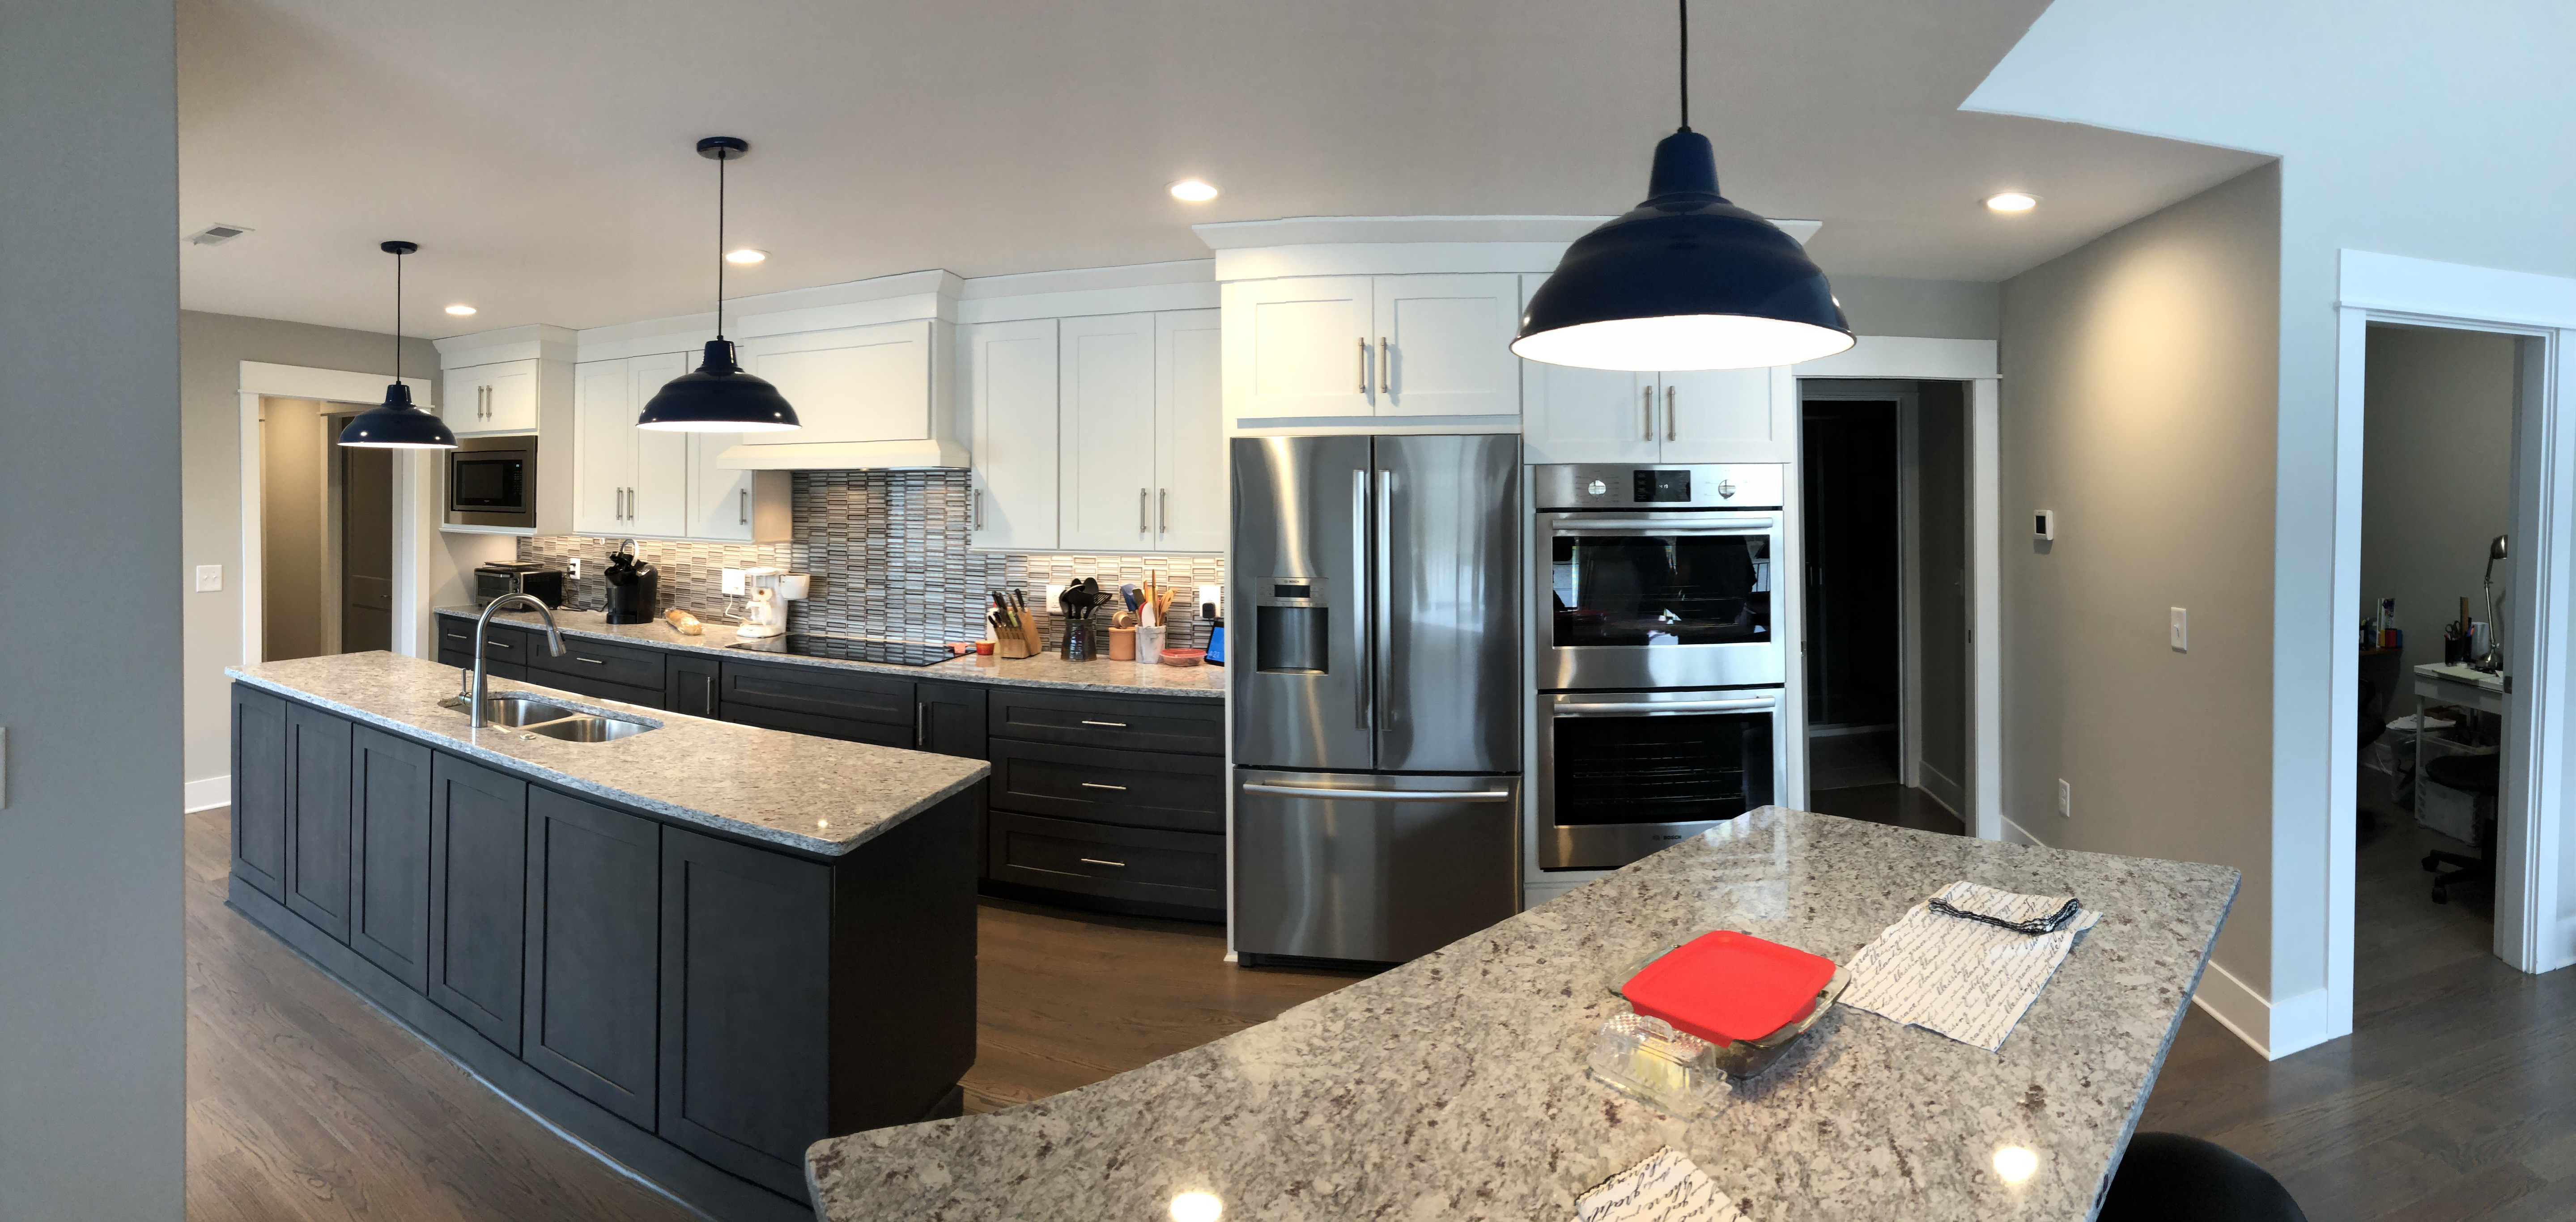 AFTER the remodeled kitchen